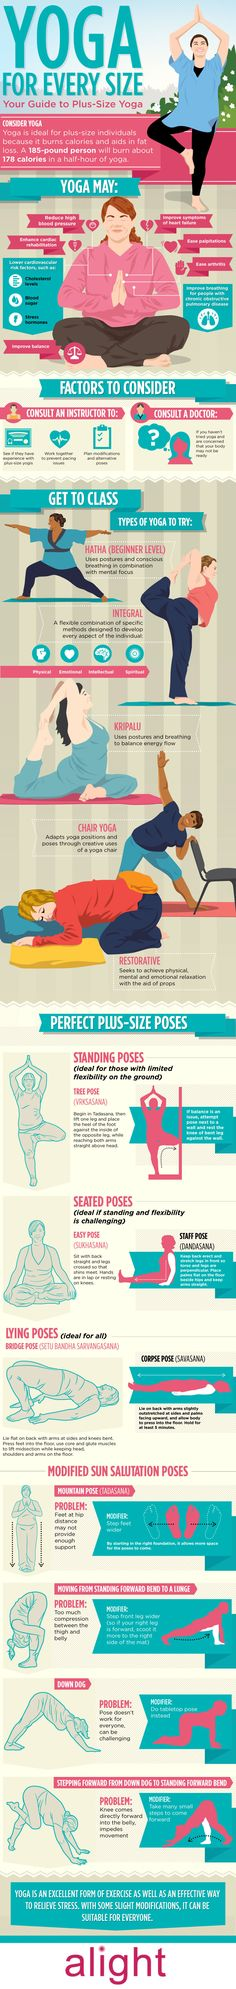 Infographic: Yoga for Every Size: Your Guide to Plus Size Yoga #infographic